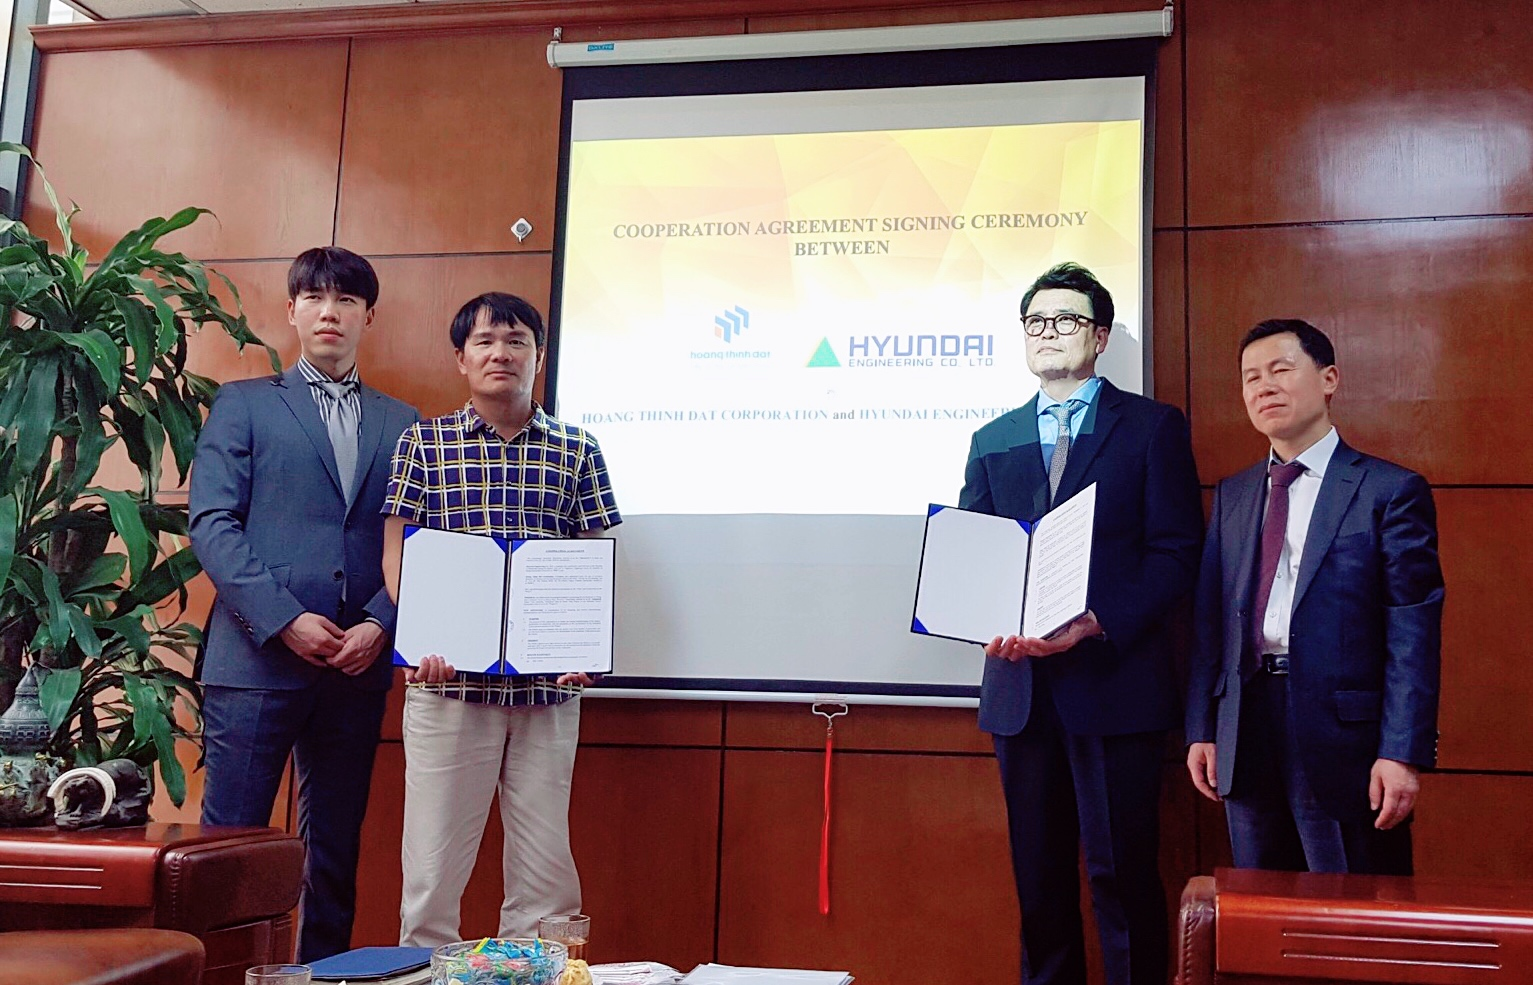 HOANG THINH DAT CORPORATION SIGNED A COOPERATION AGREEMENT WITH